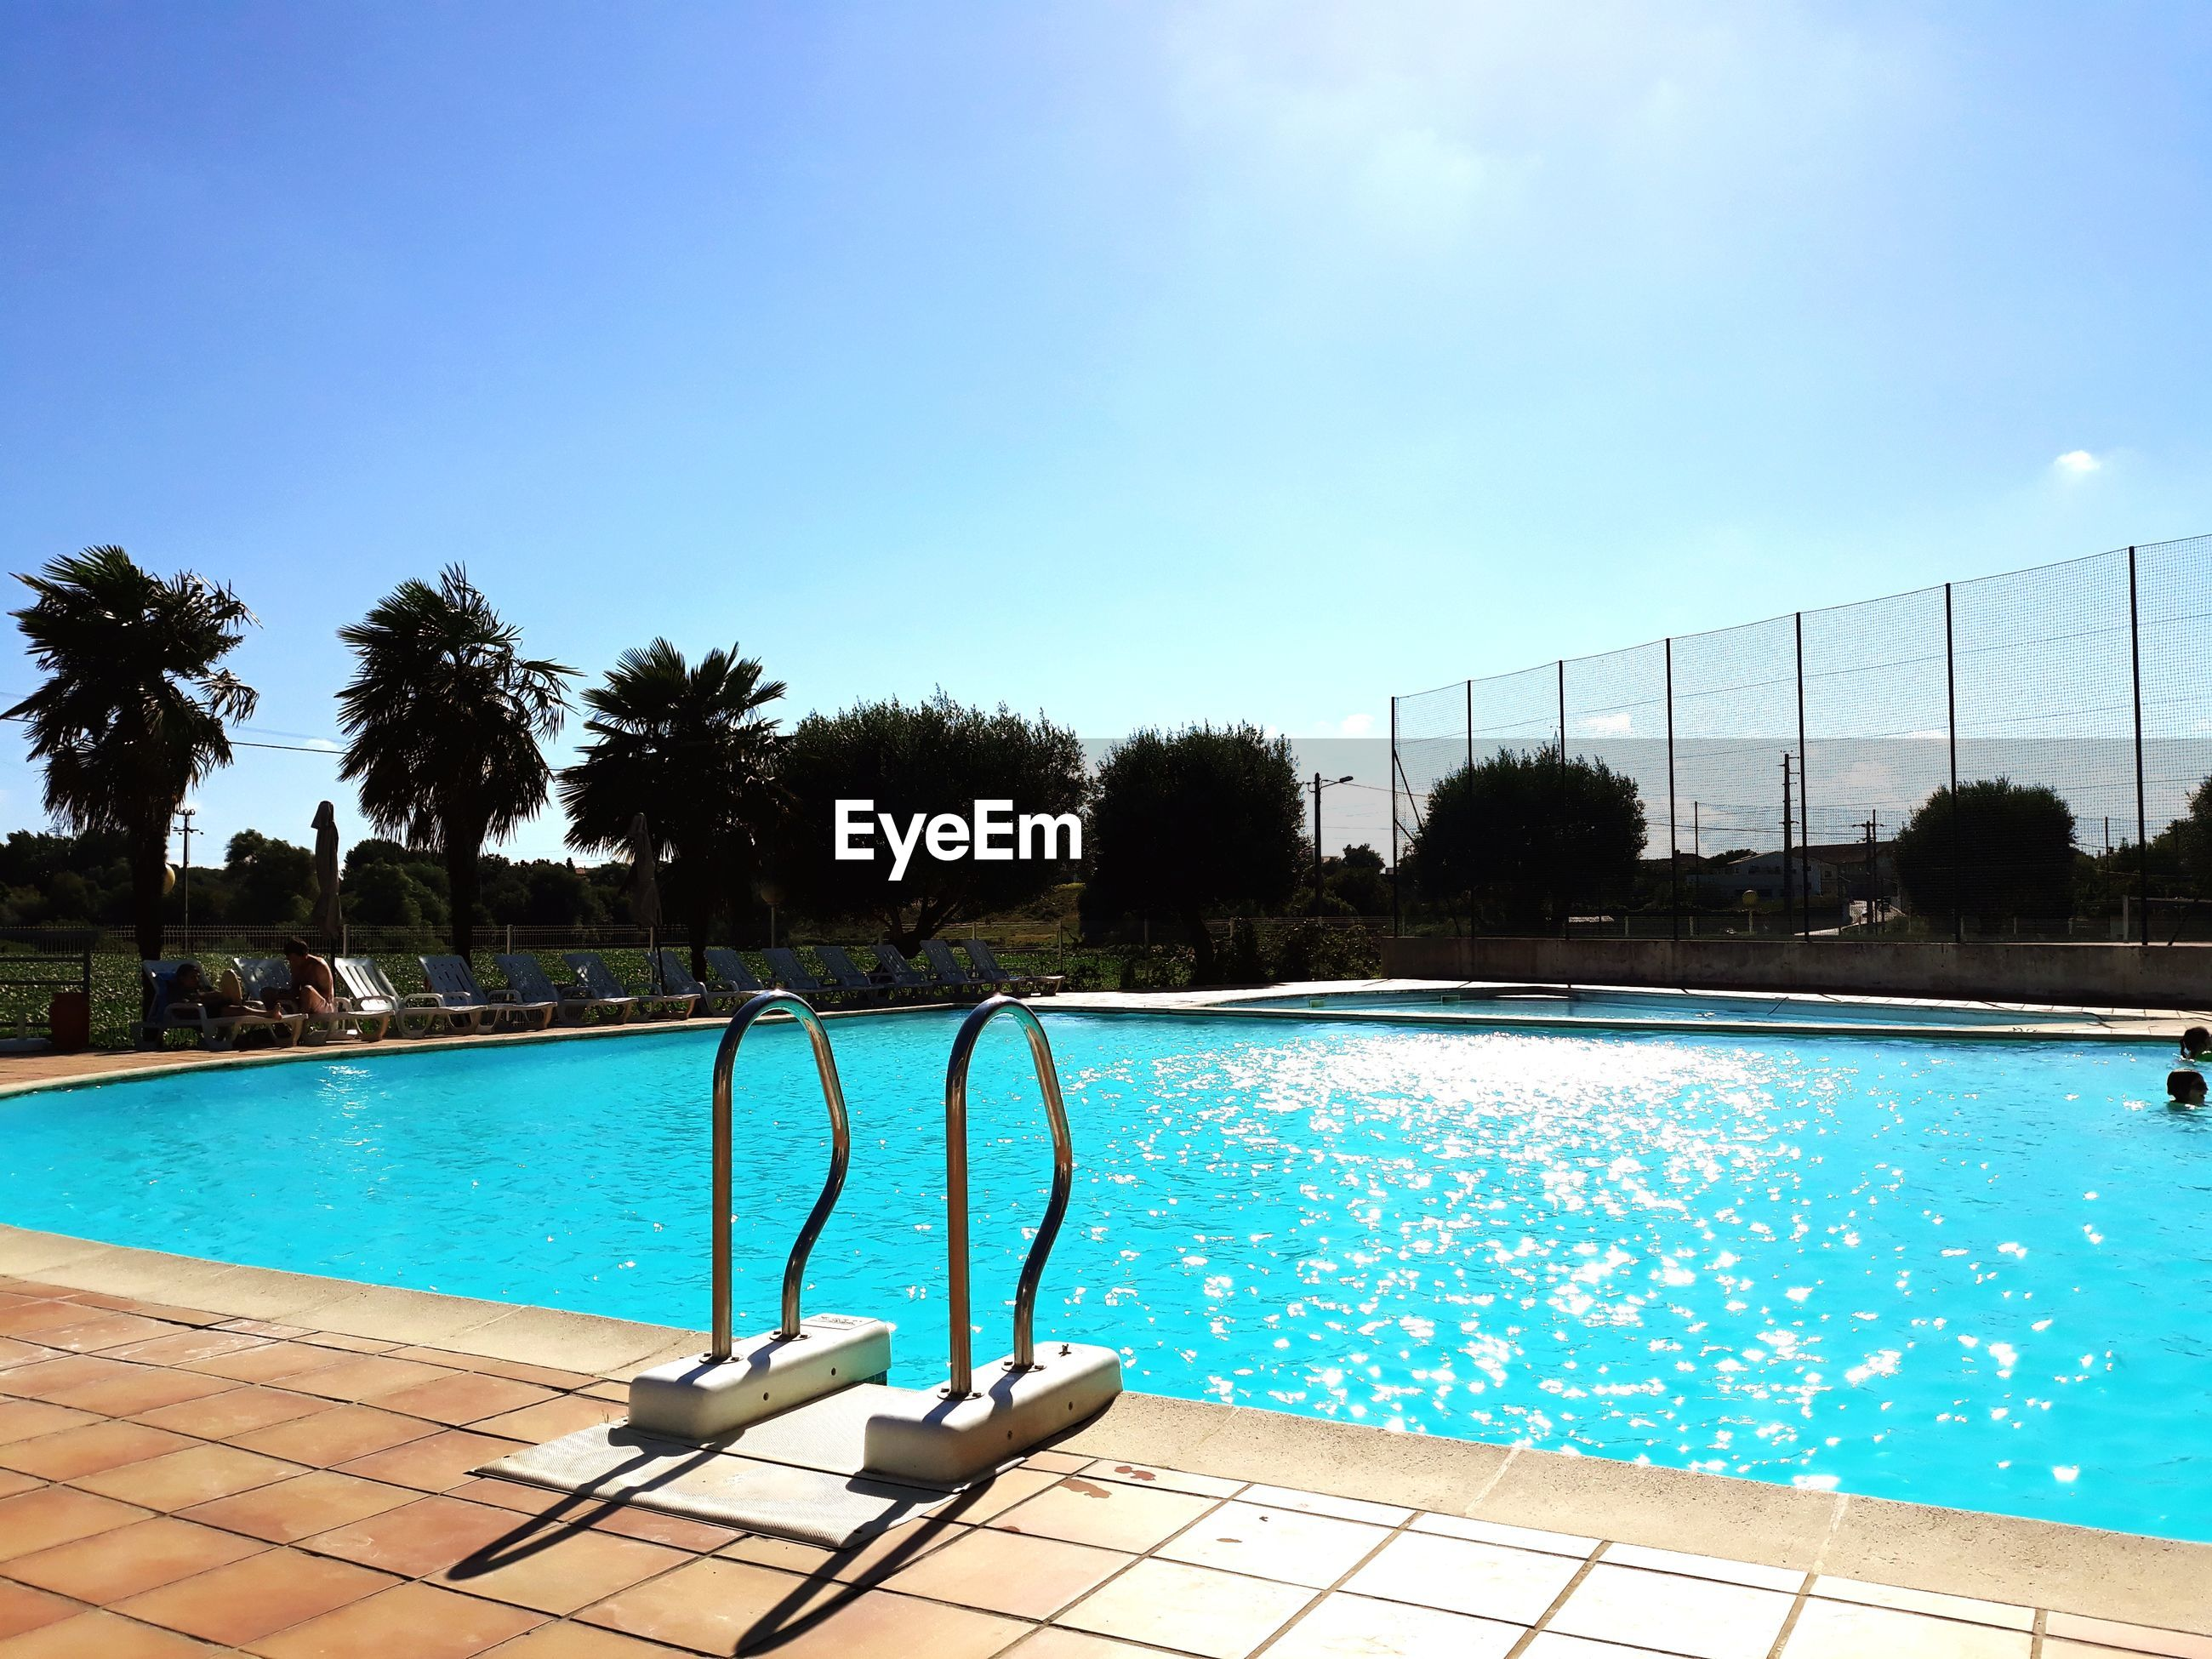 Swimming pool against clear blue sky during sunny day